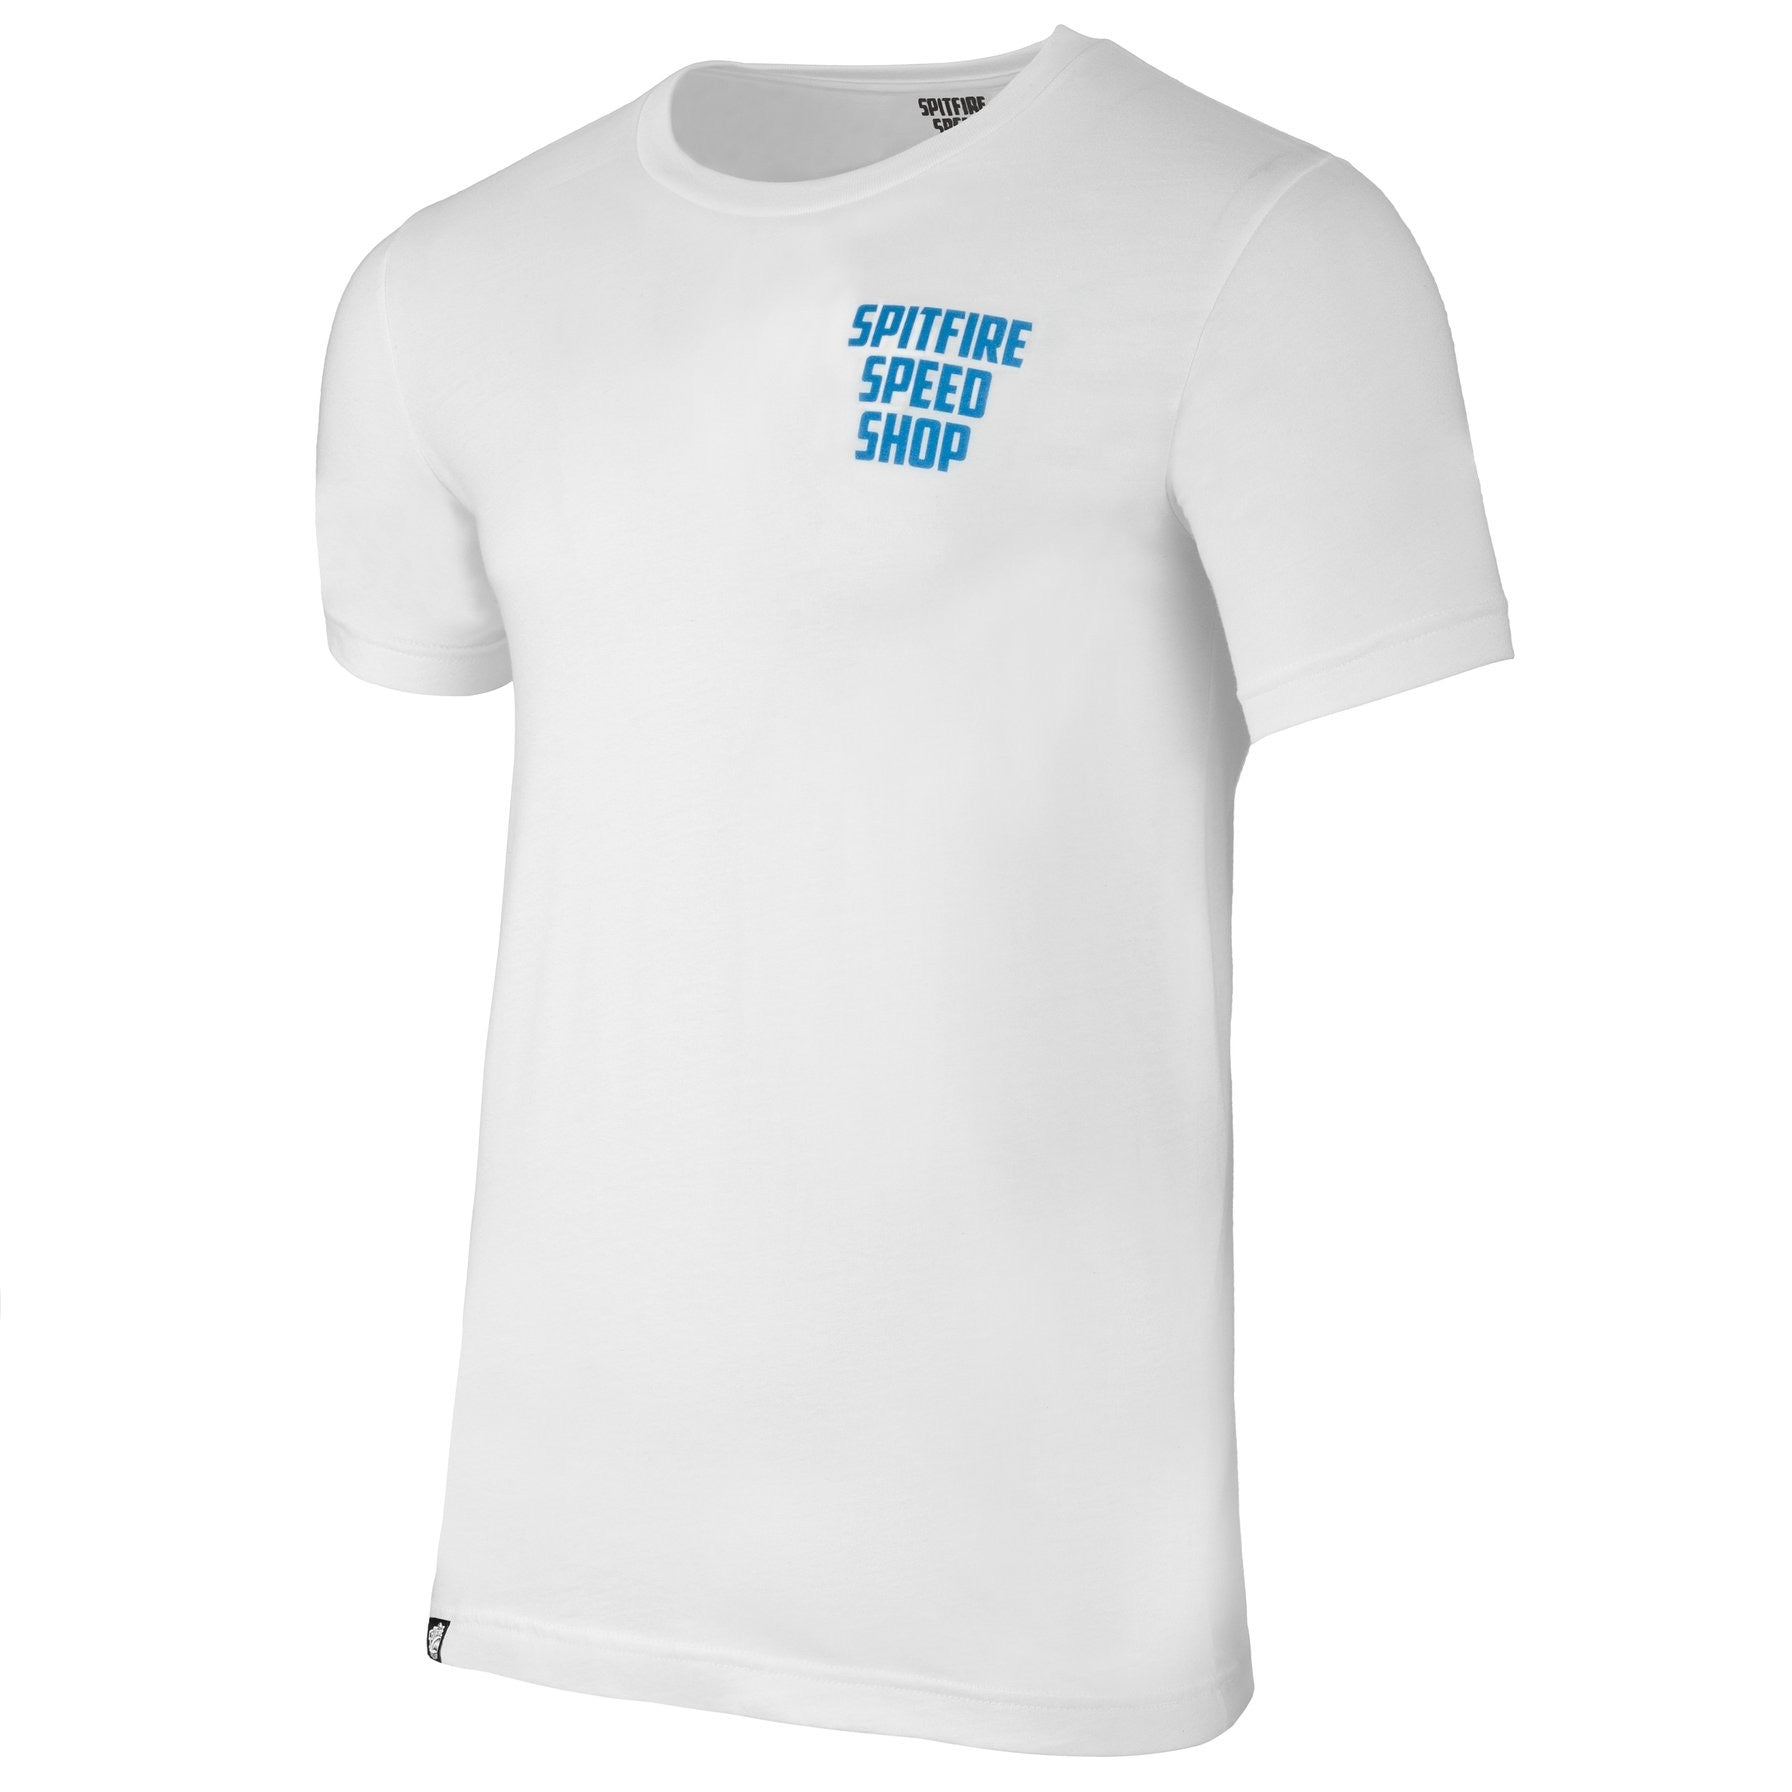 Spitfire Tee White With Riding Waves Logo